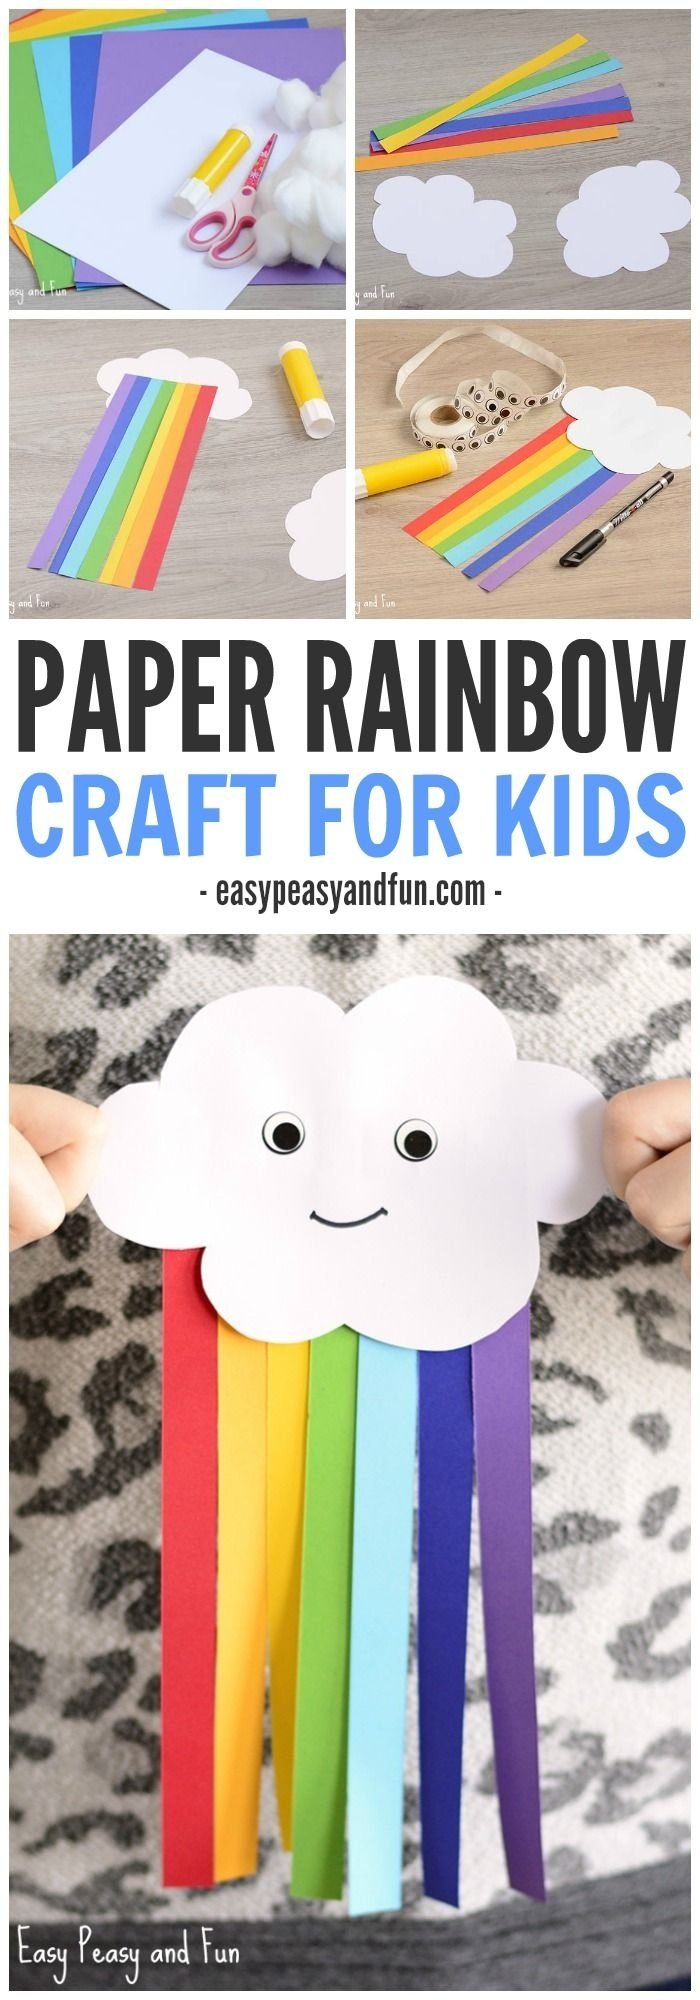 10 Awesome Pinterest Craft Ideas For Kids